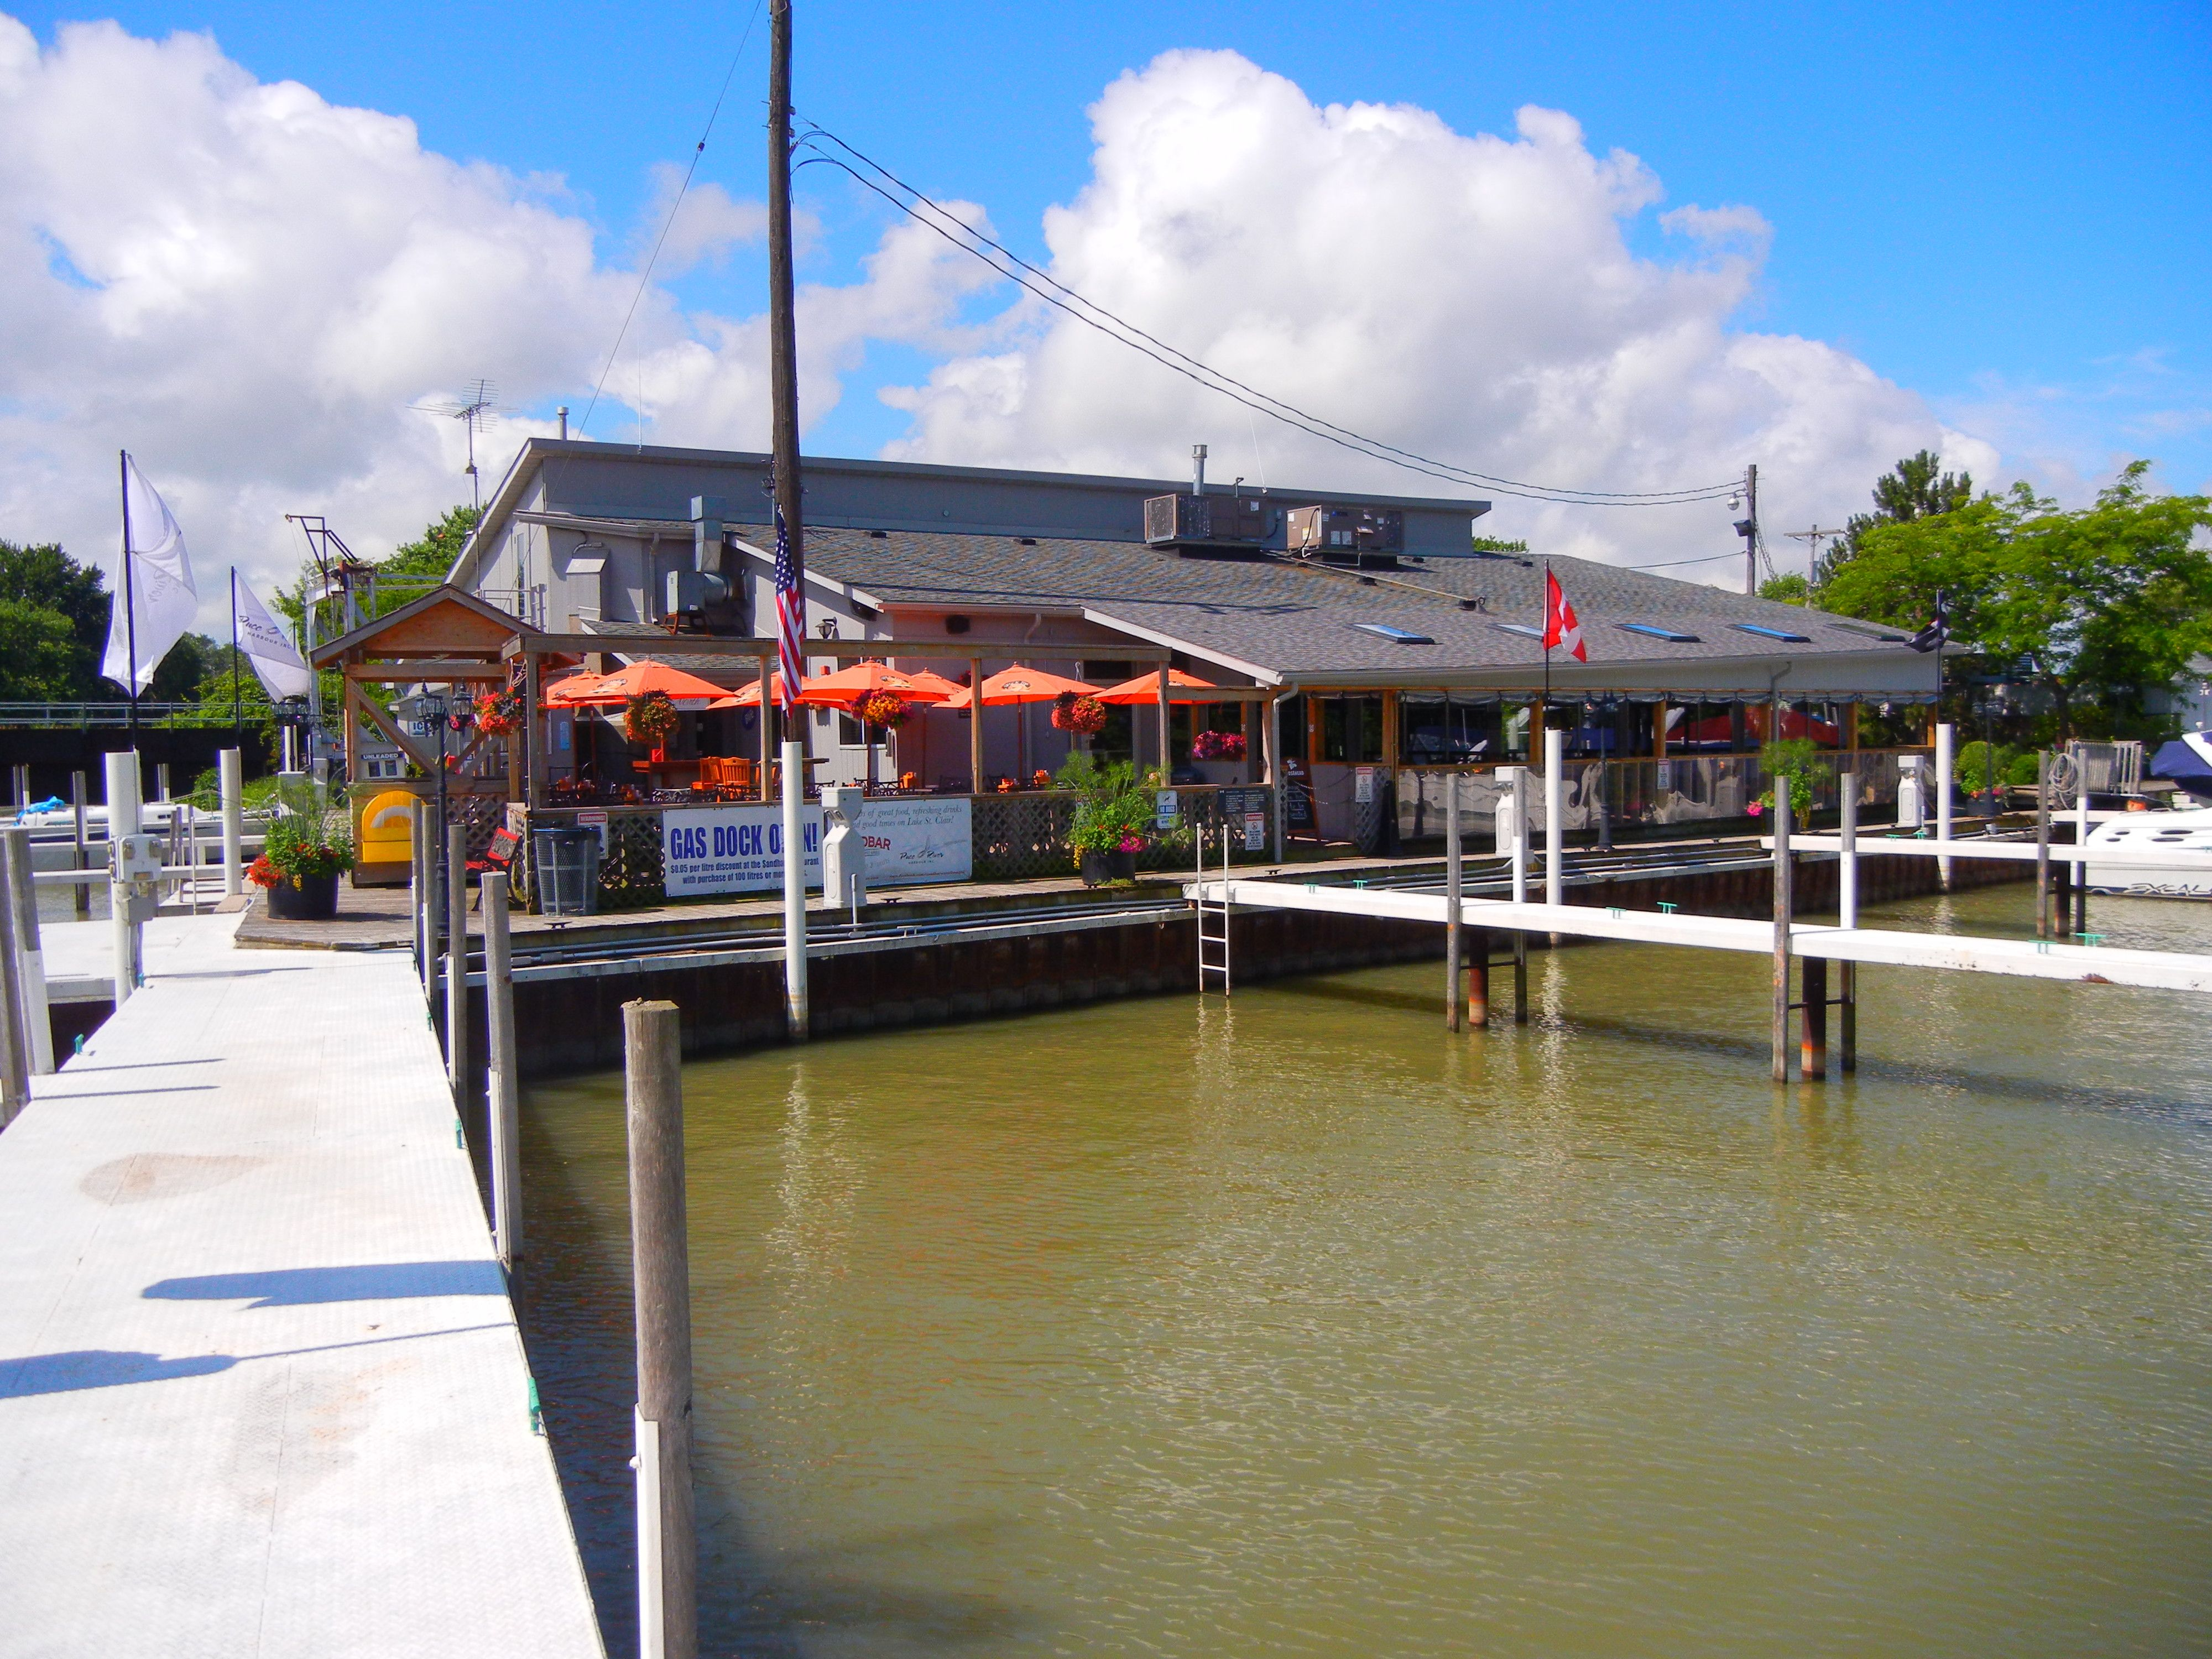 Puce River Marina And Sandbar Restaurant Located On Lake St Clair Near Windsor Ontario Asking Price Is 1 850 000 Facility Has 100 Slips A Beautiful